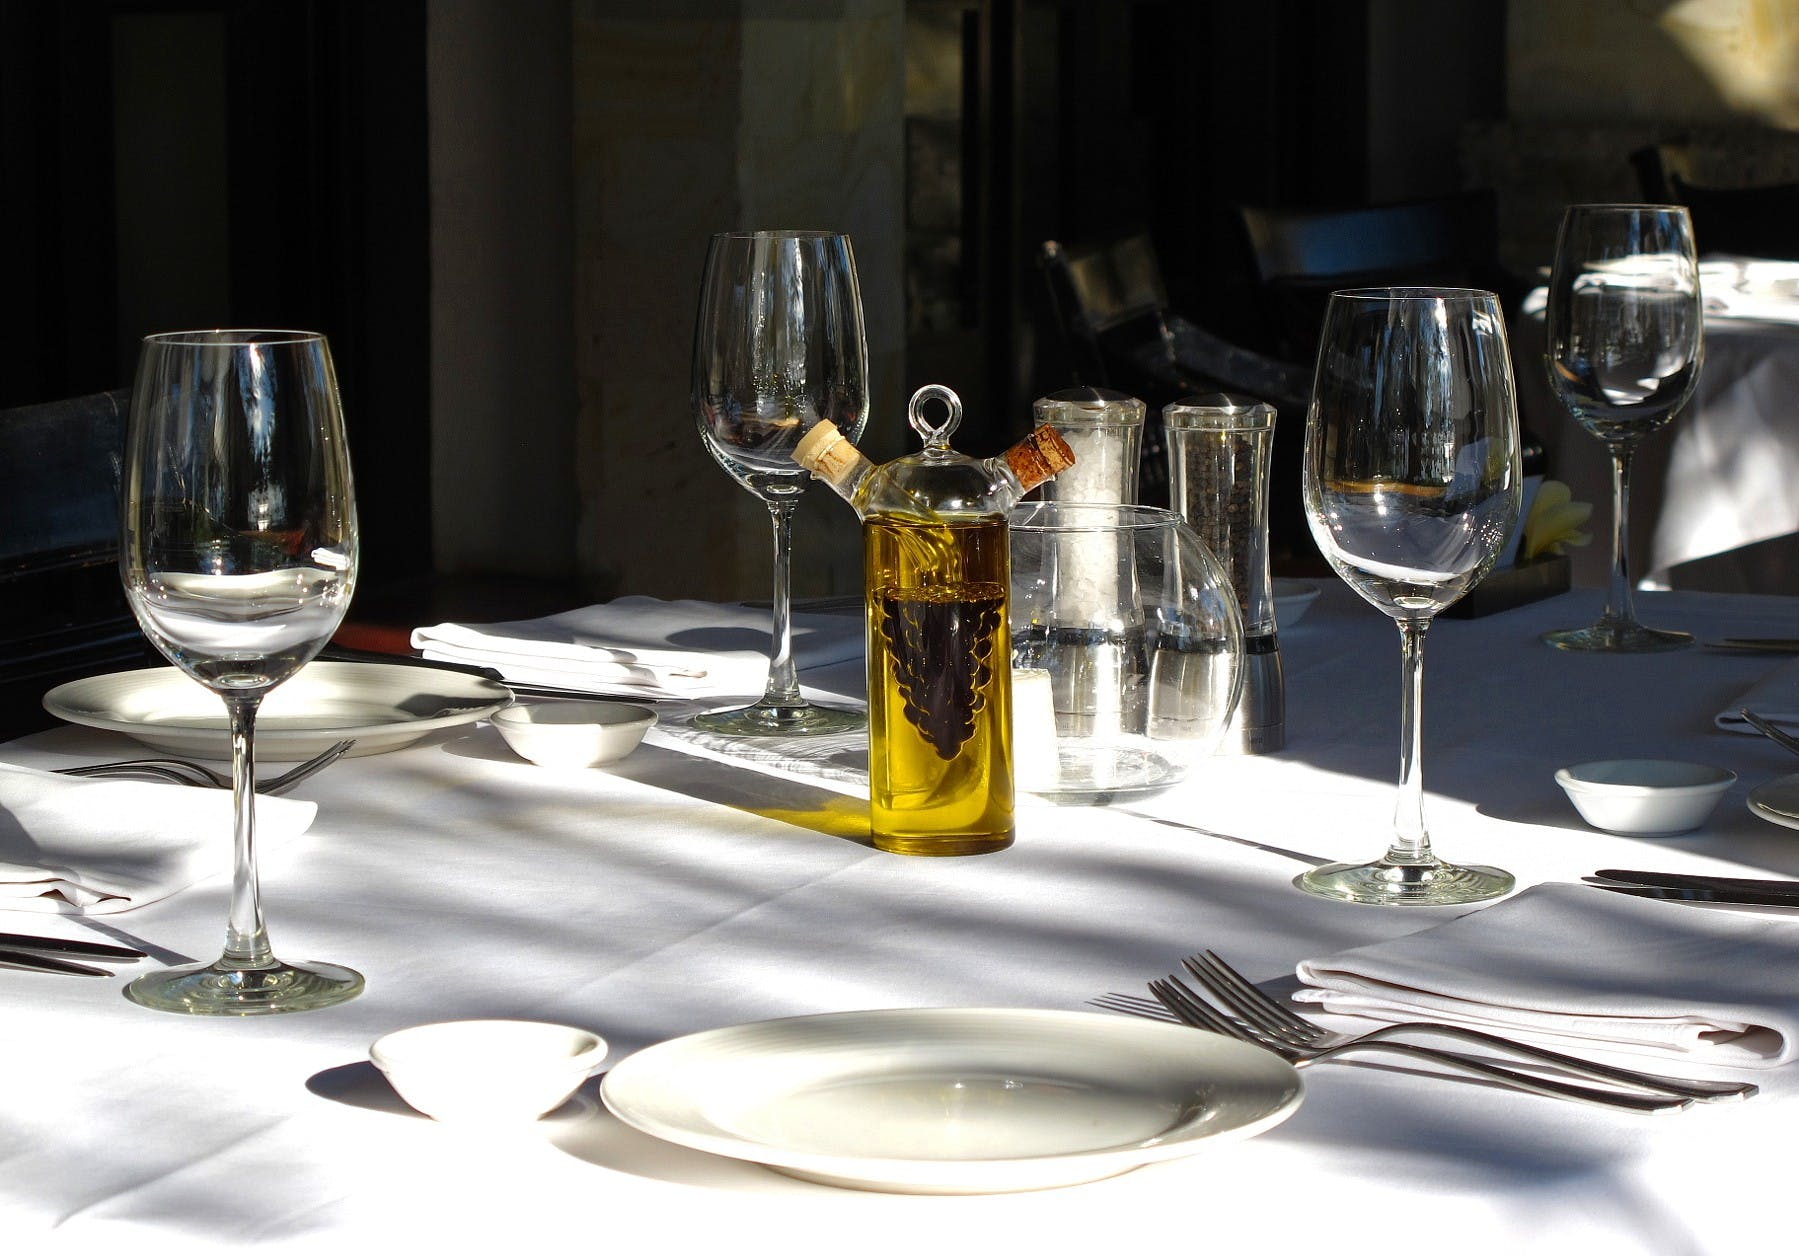 a table set with white plates, empty wine glasses and silverware